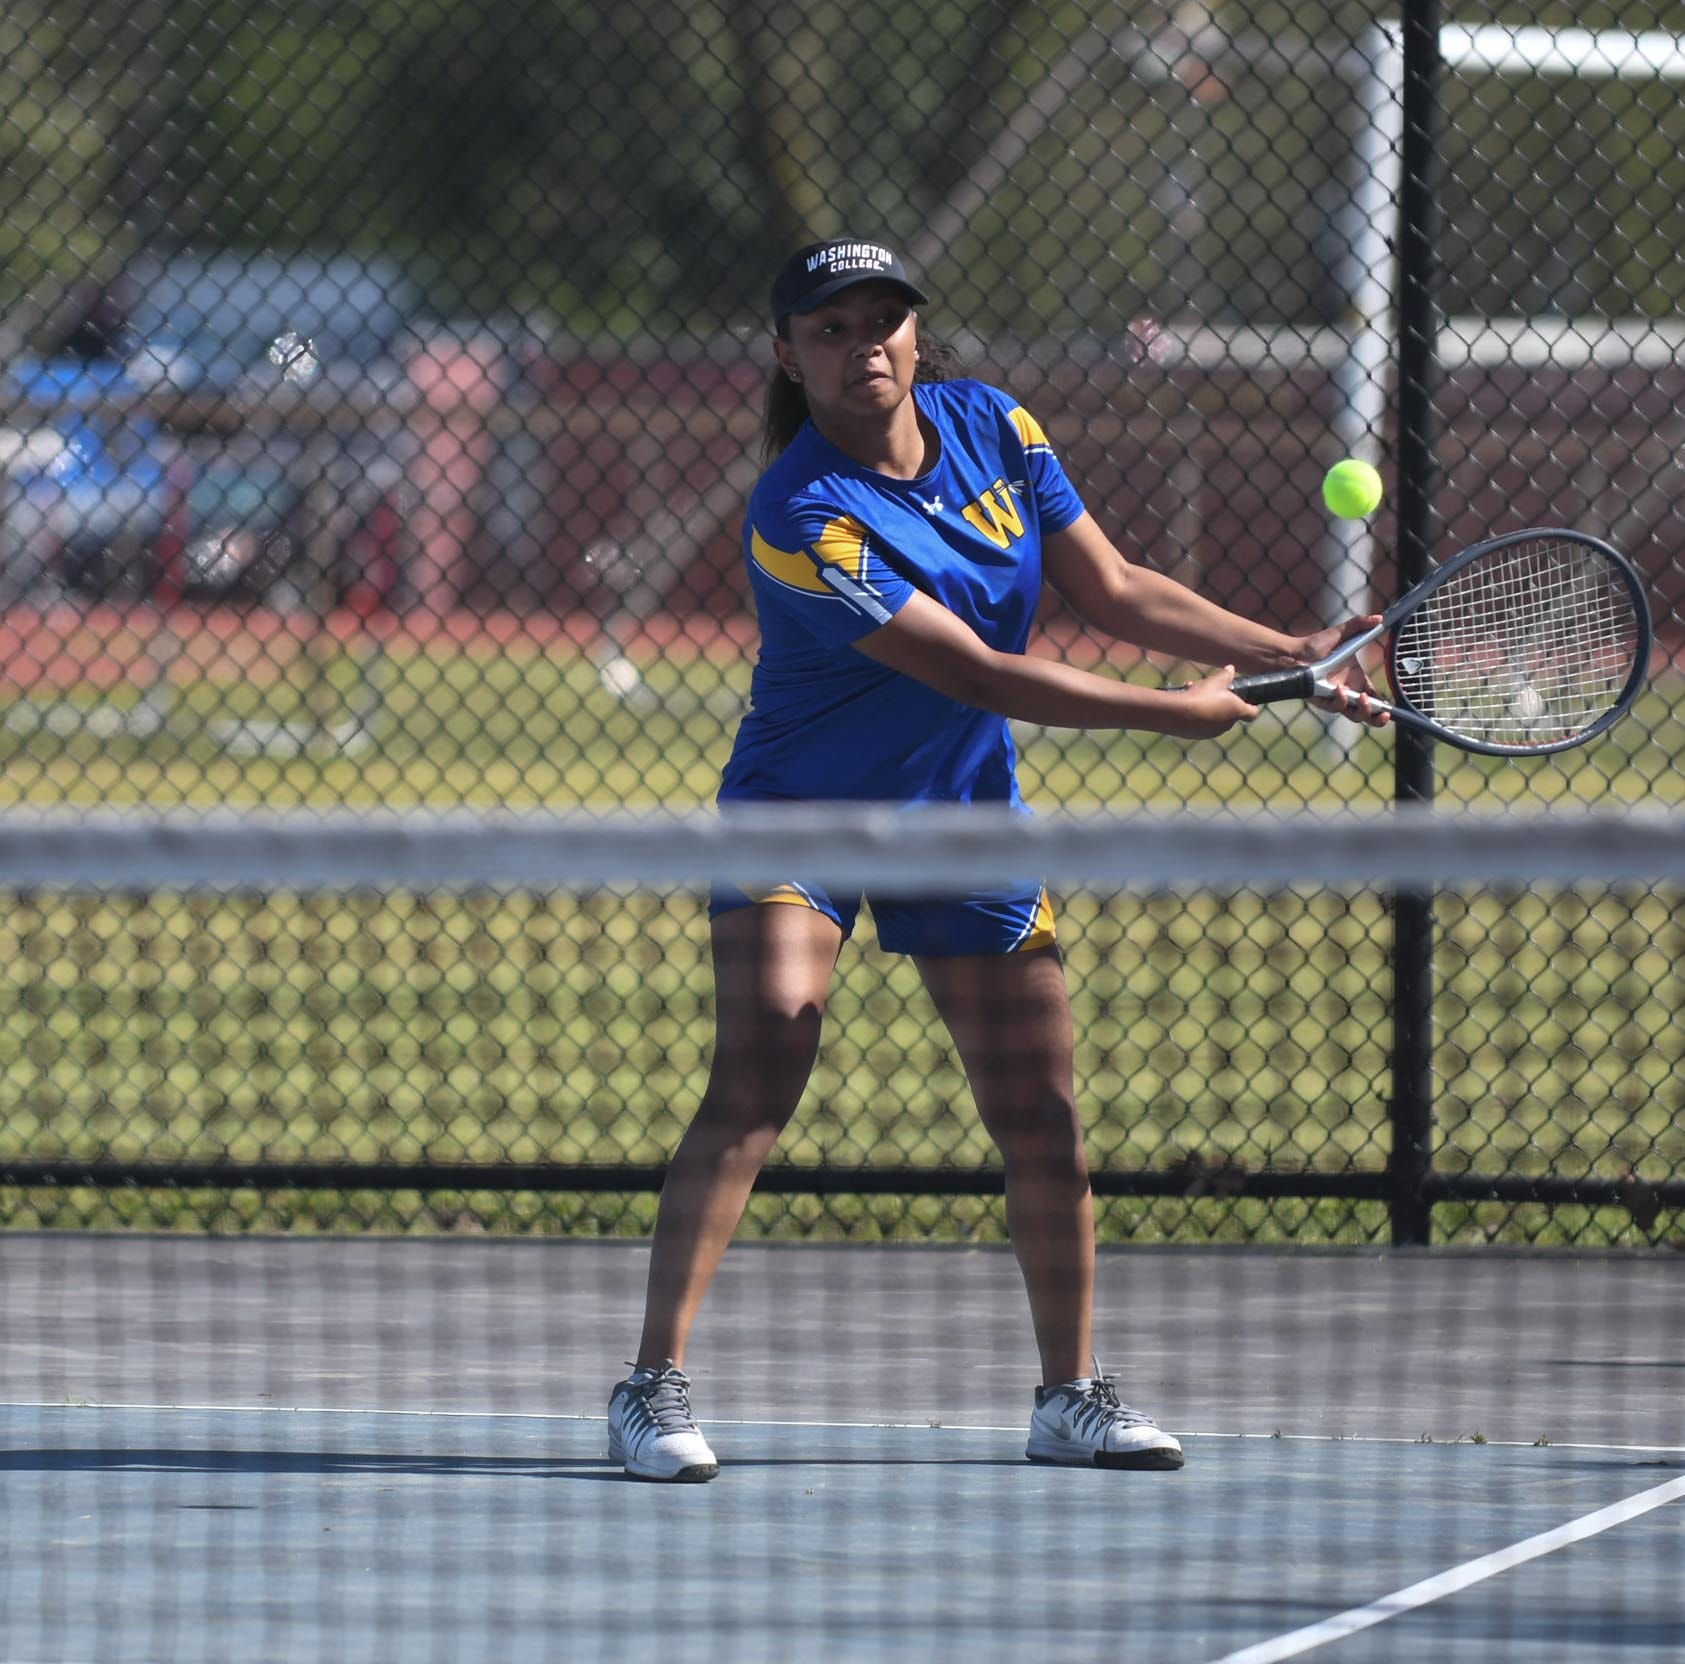 Wi-Hi athlete learns tennis to boost resume, becomes team's top player